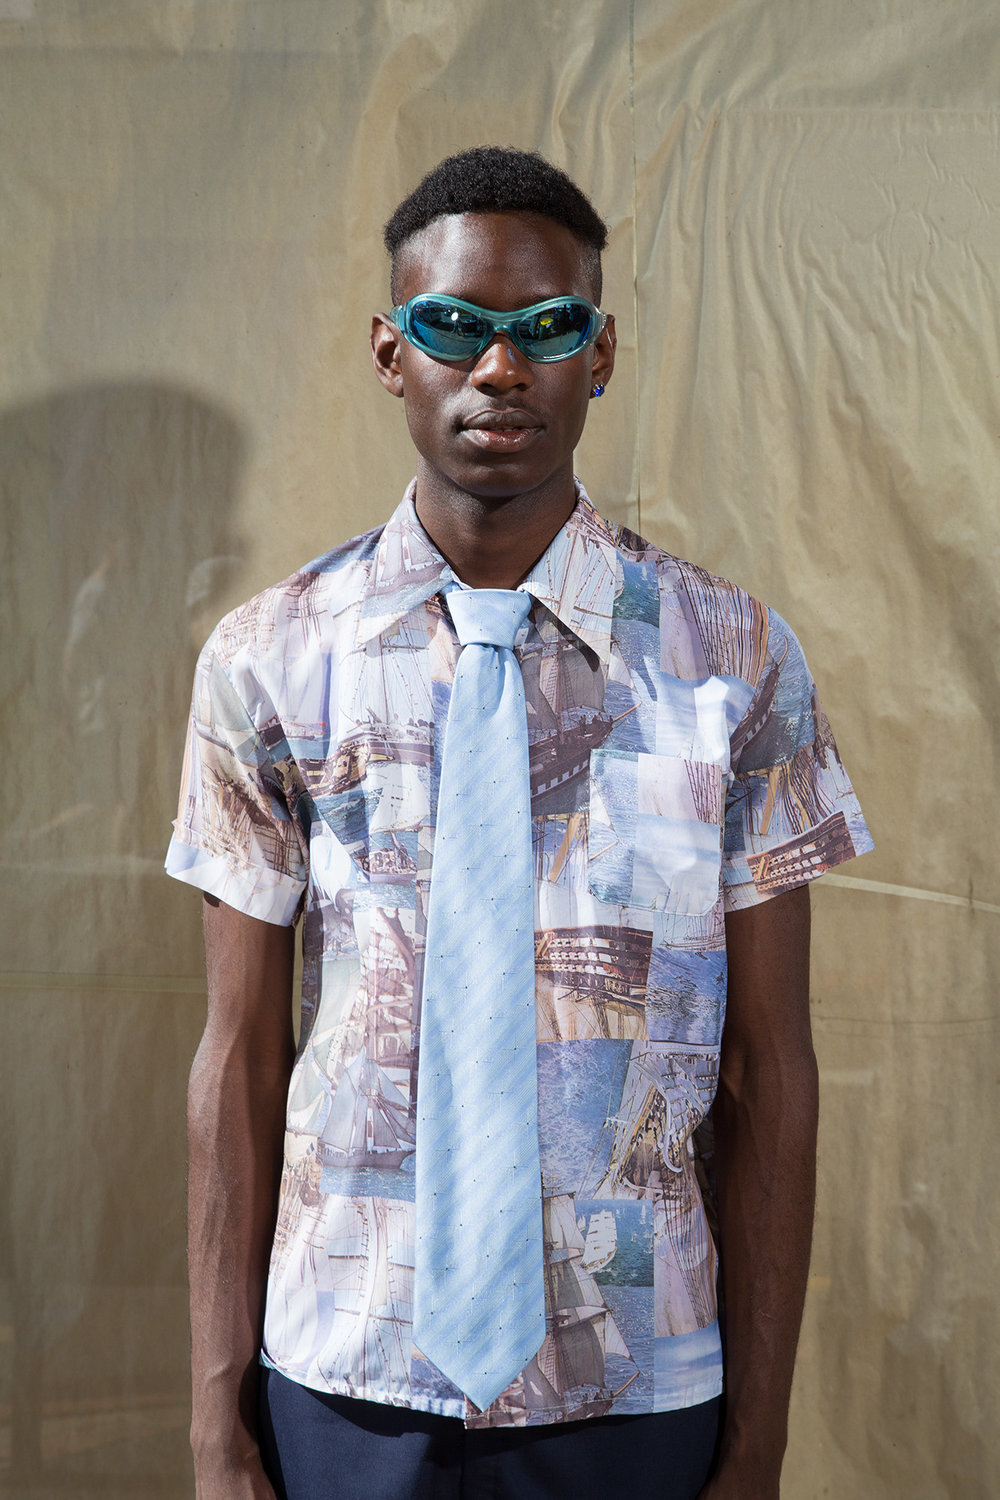 Vintage shirt from Tangent & Co, stylists own necktie and Sunglasses, models own jewellery.